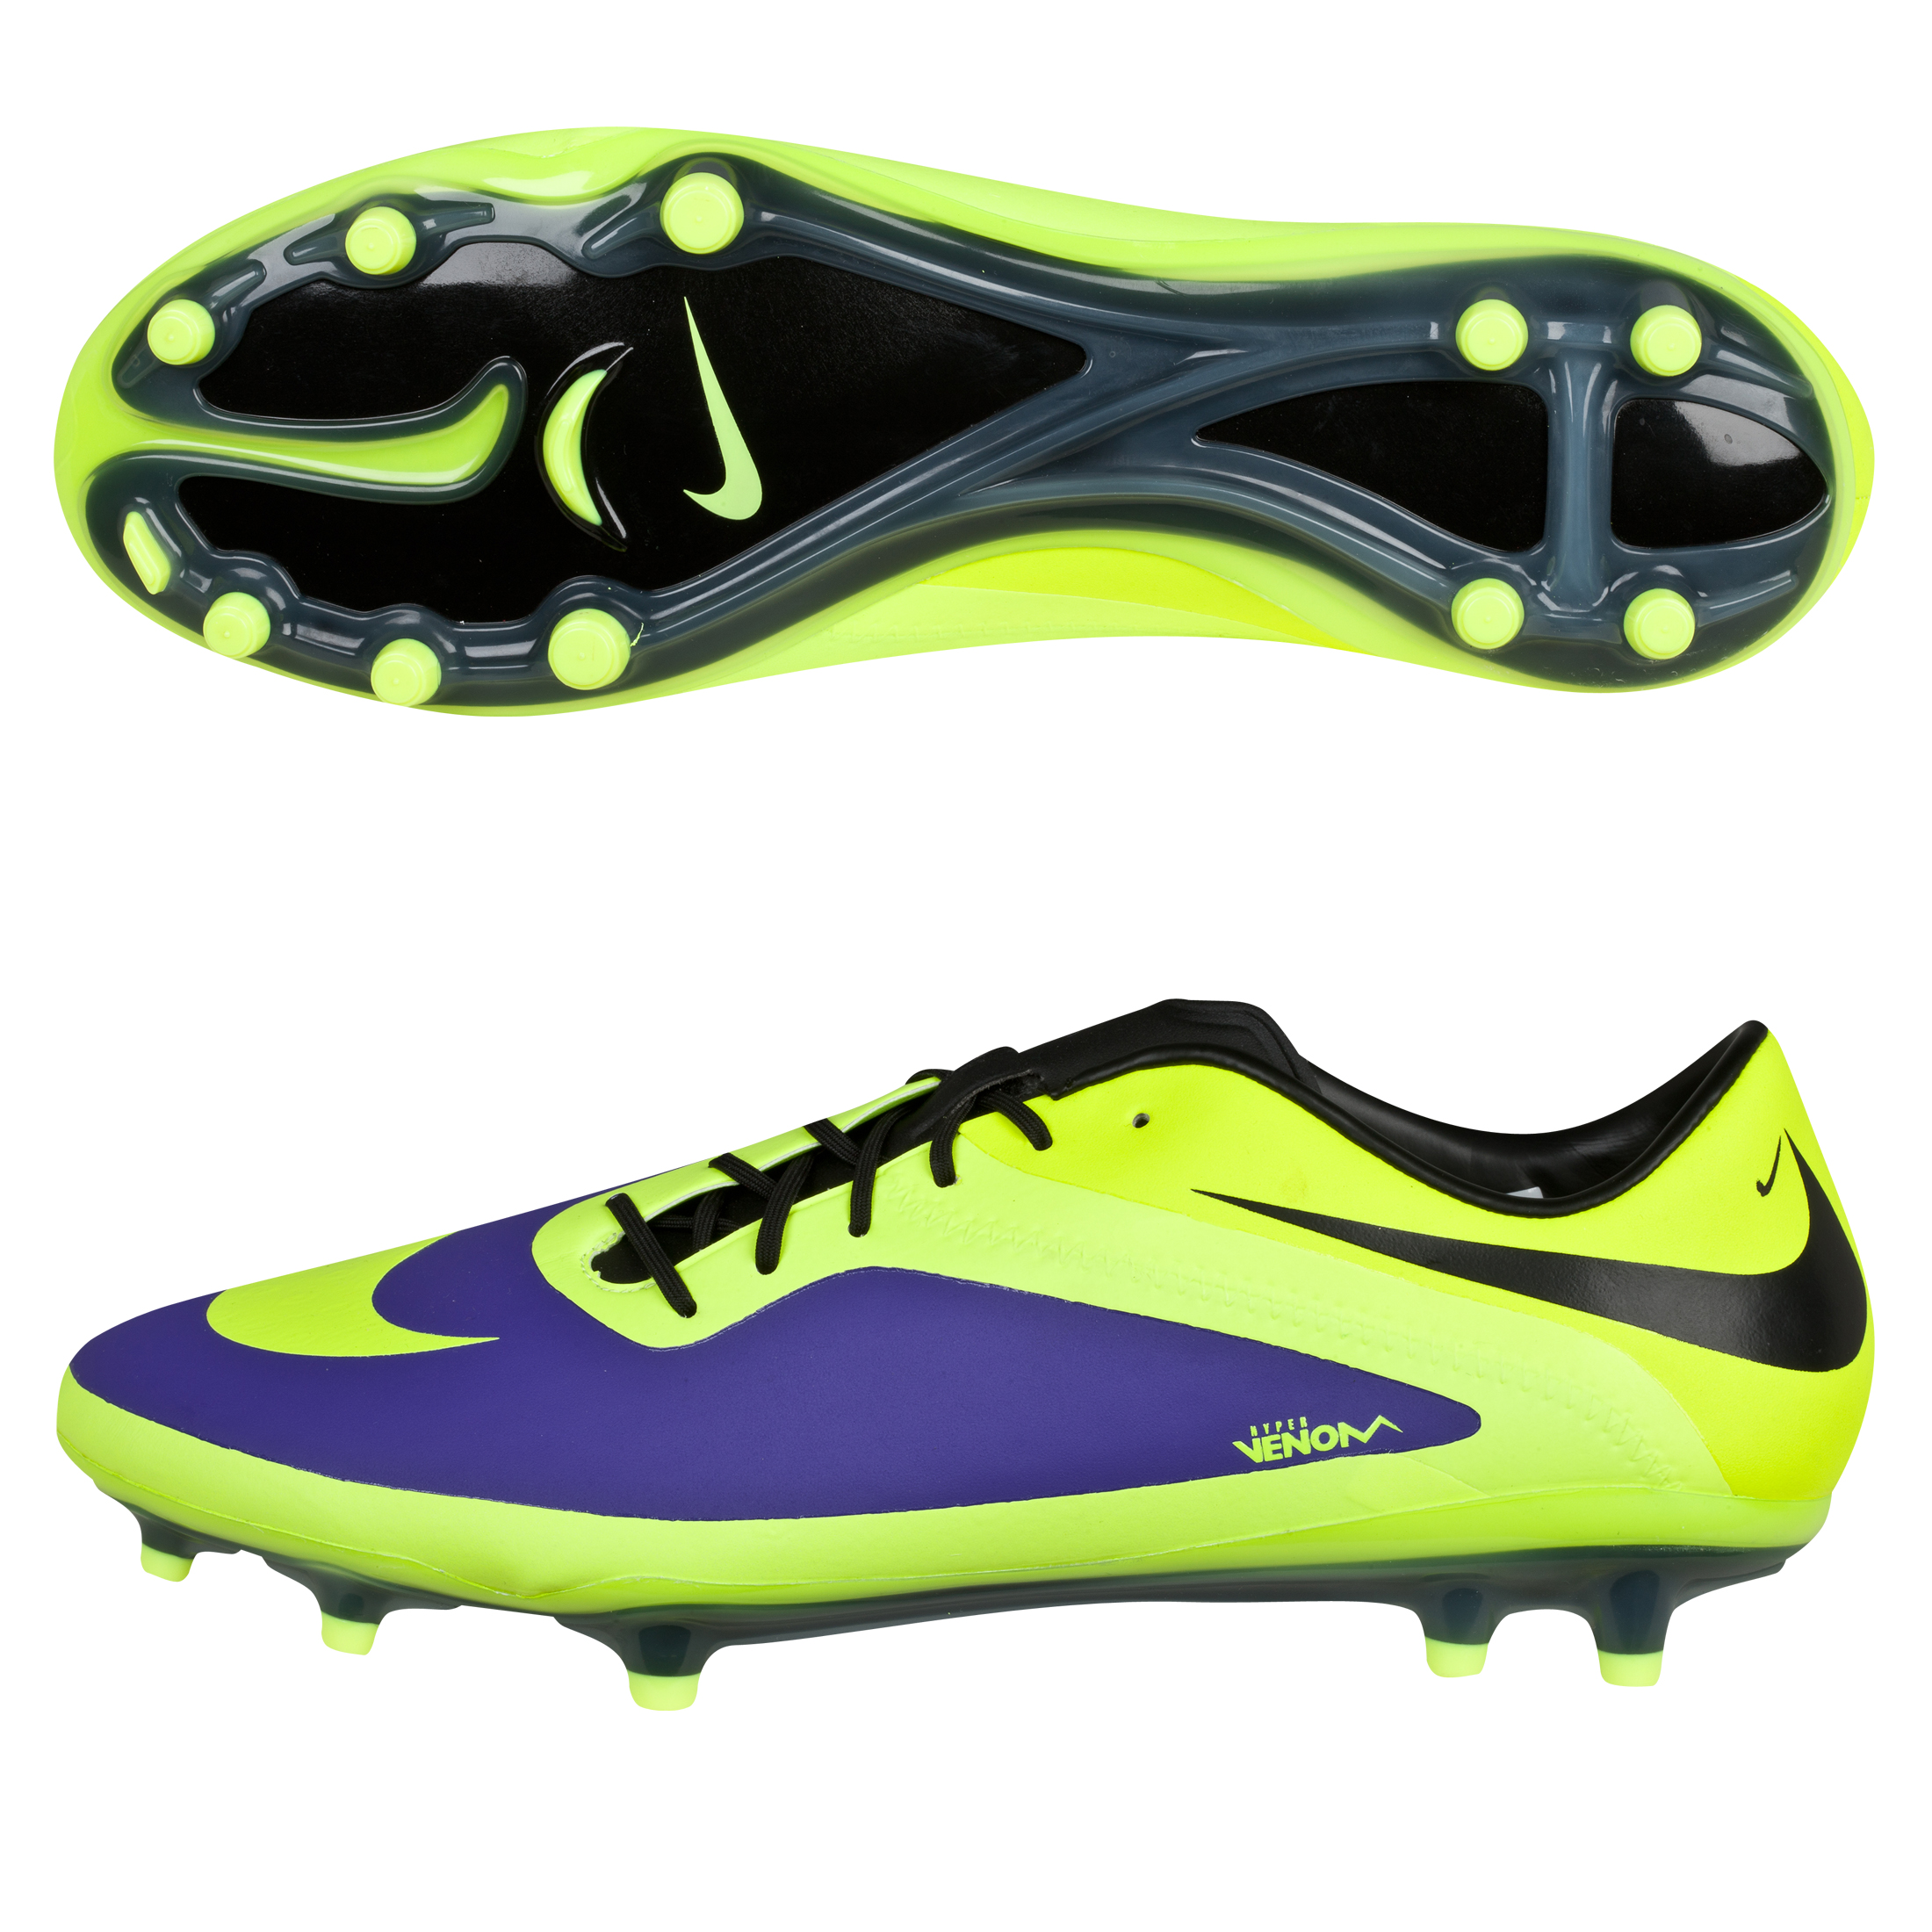 Nike Hypervenom Phatal Firm Ground Football Boots -Electro Purple/Volt/Black Purple